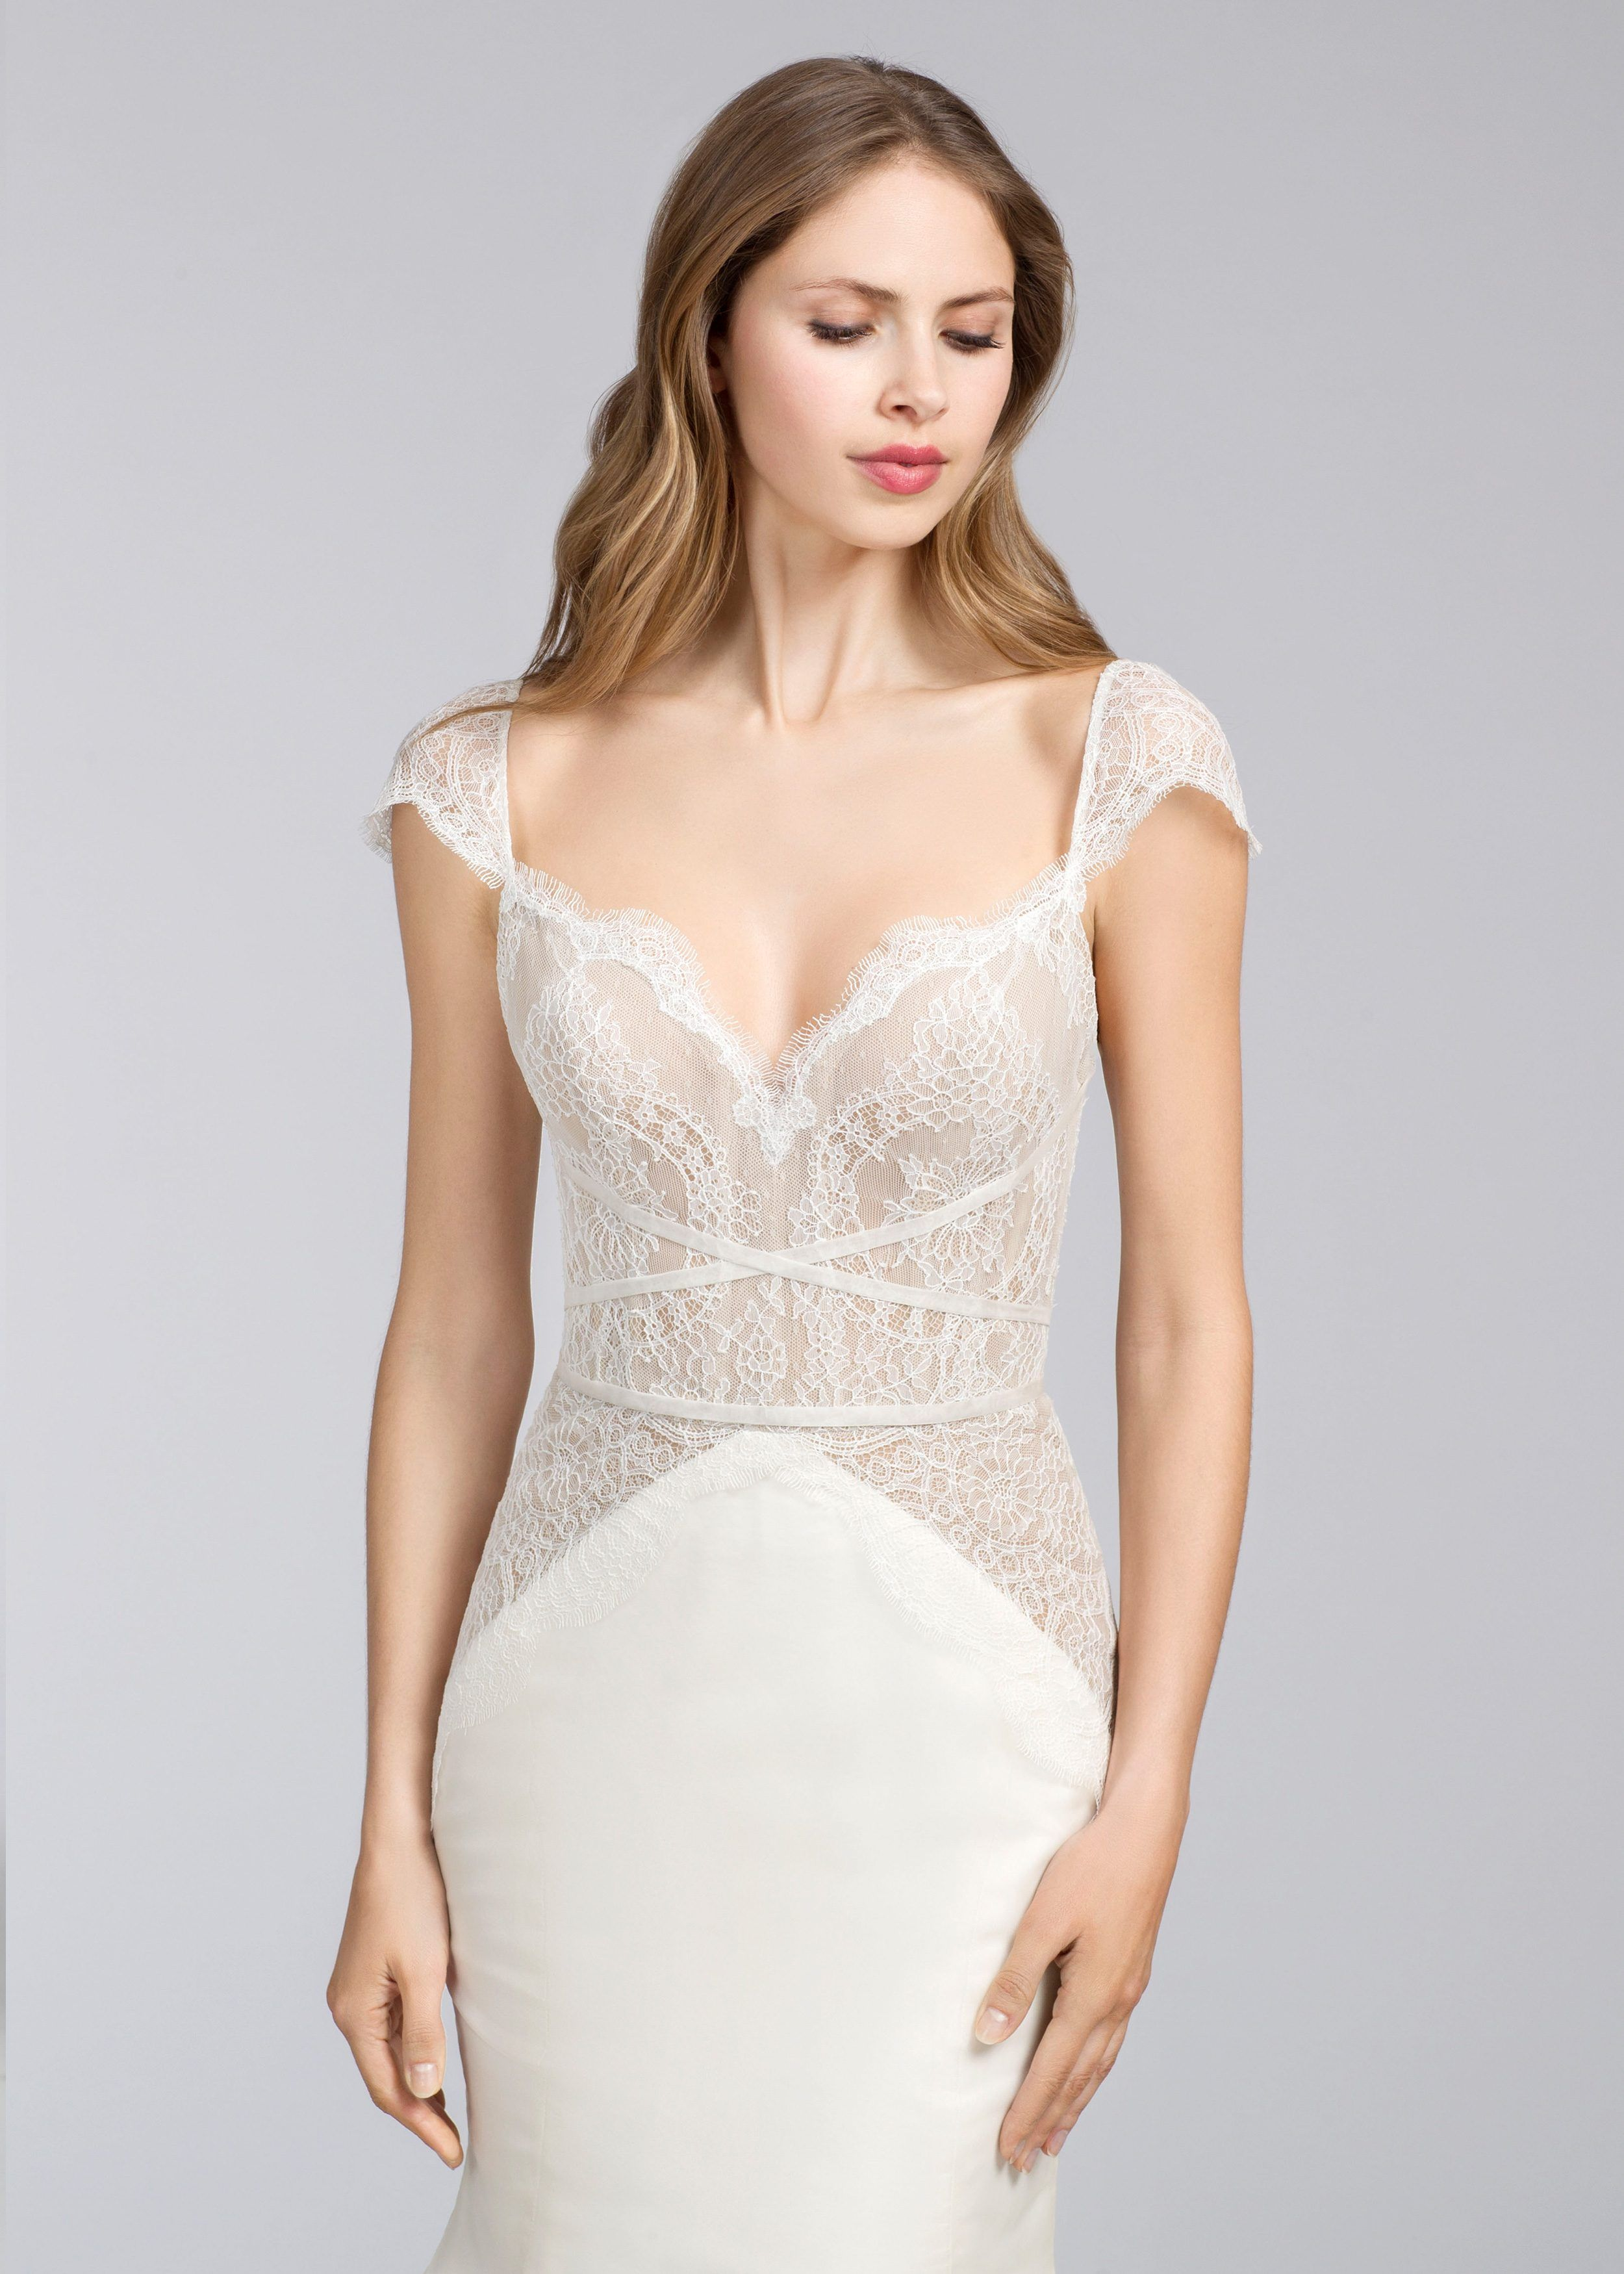 Best wedding dresses for athletic body type  Bridal Gowns and Wedding Dresses by JLM Couture  Style   Nice